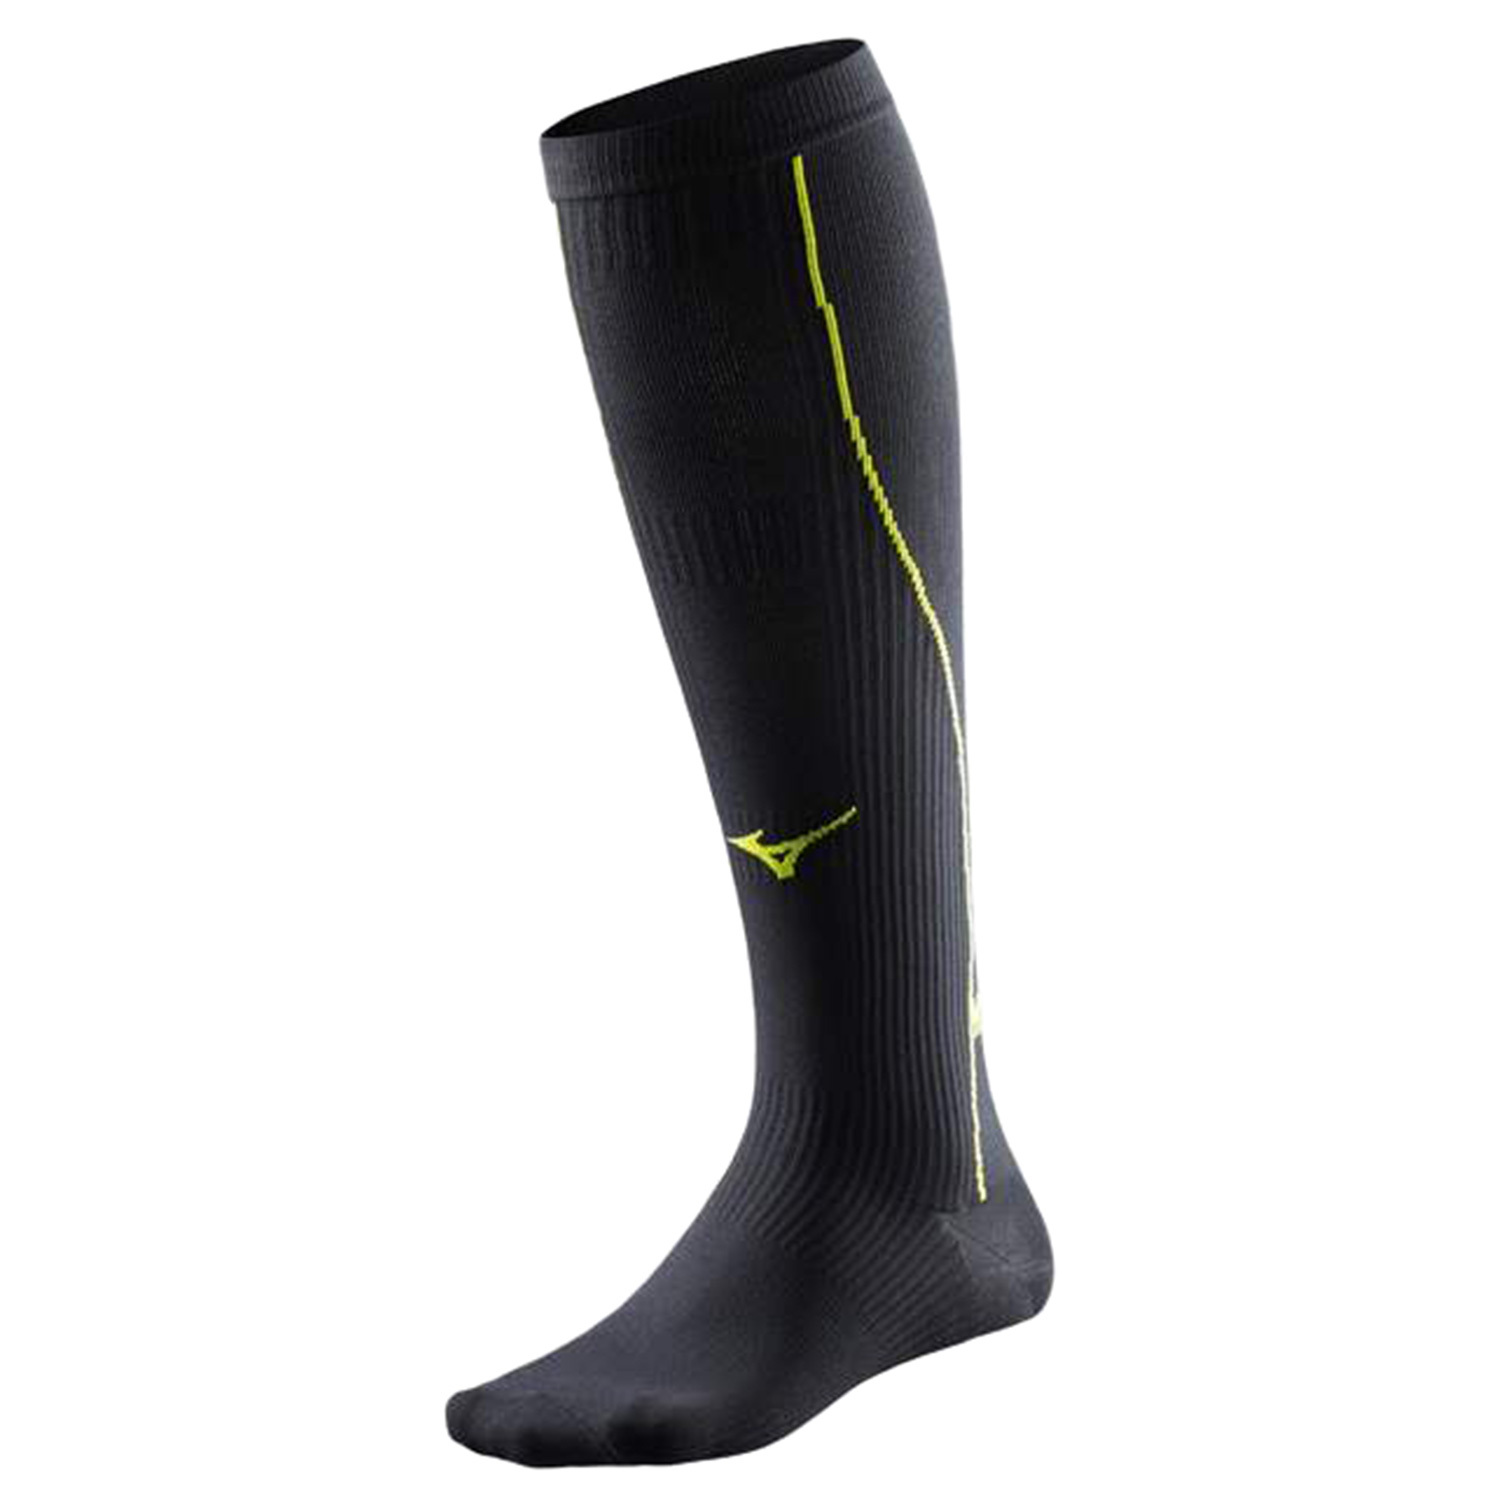 Компрессионные гольфы Mizuno Compression Sock (J2GX5A10 93)